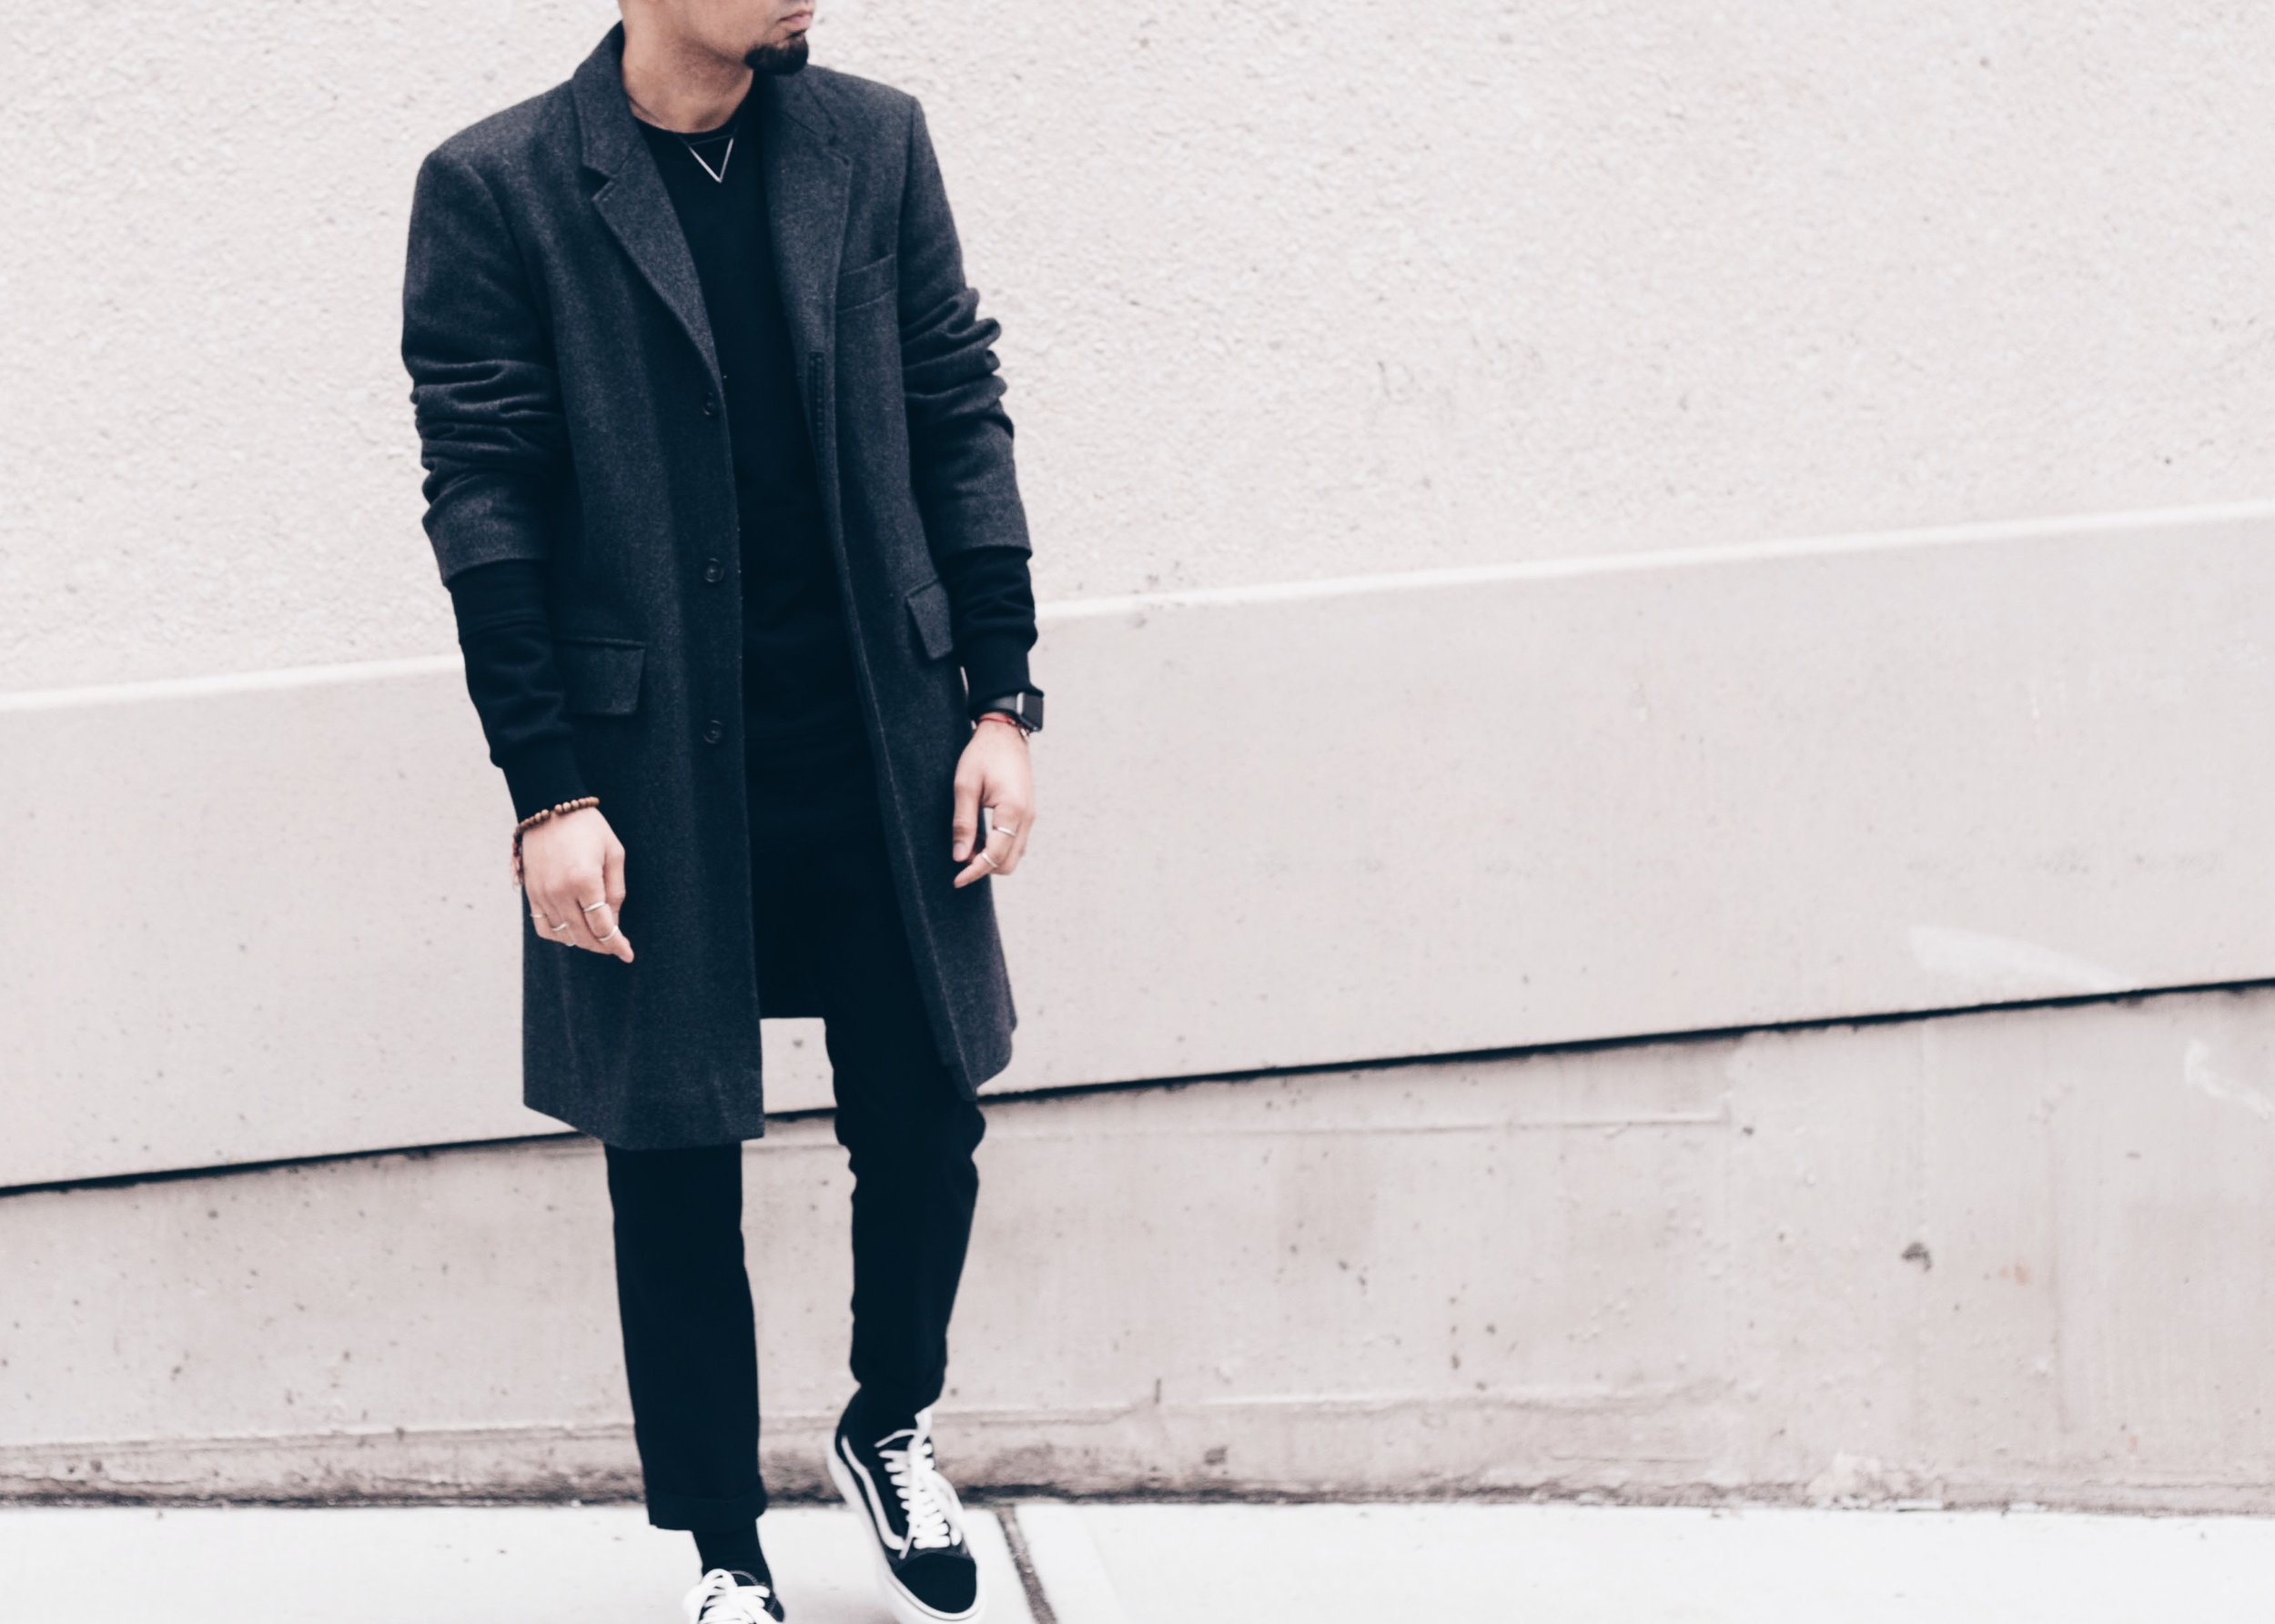 sam-c-perry-all-black-distressed-sweater-oversized-overcoat-walk-cropped.jpg